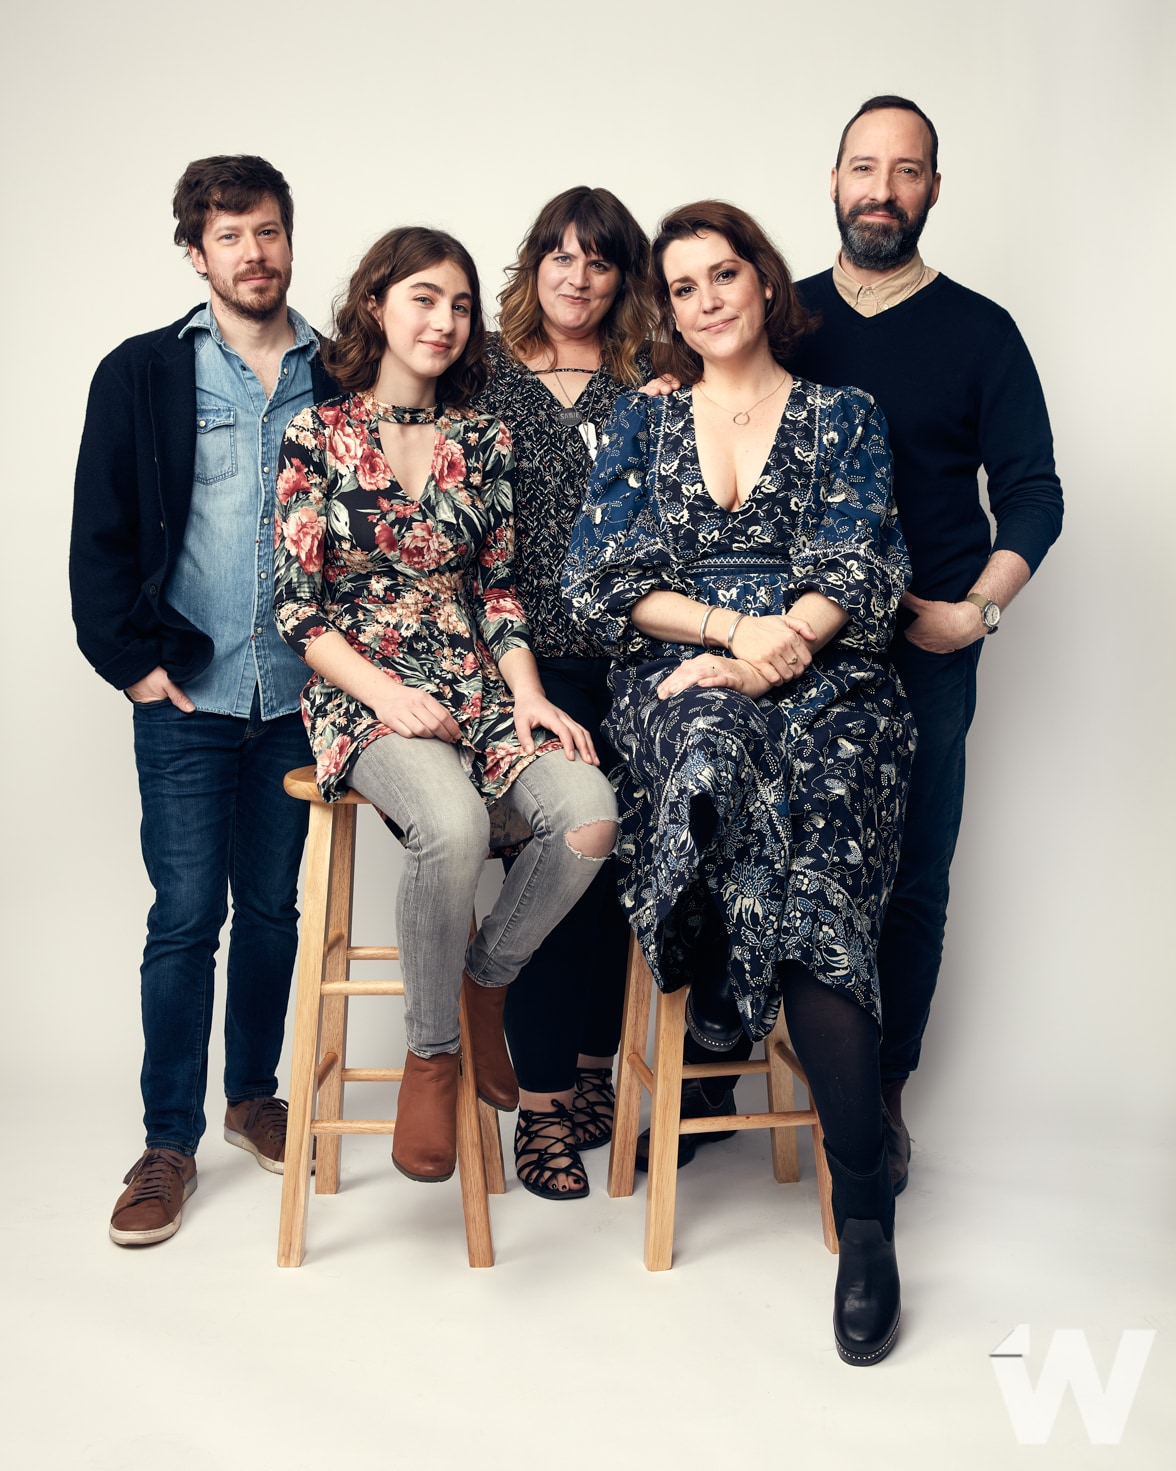 SXSW 2018 John Gallagher Jr., Sophia Mitri, Megan Griffiths, Melanie Lynskey, and Tony Hale Sadie